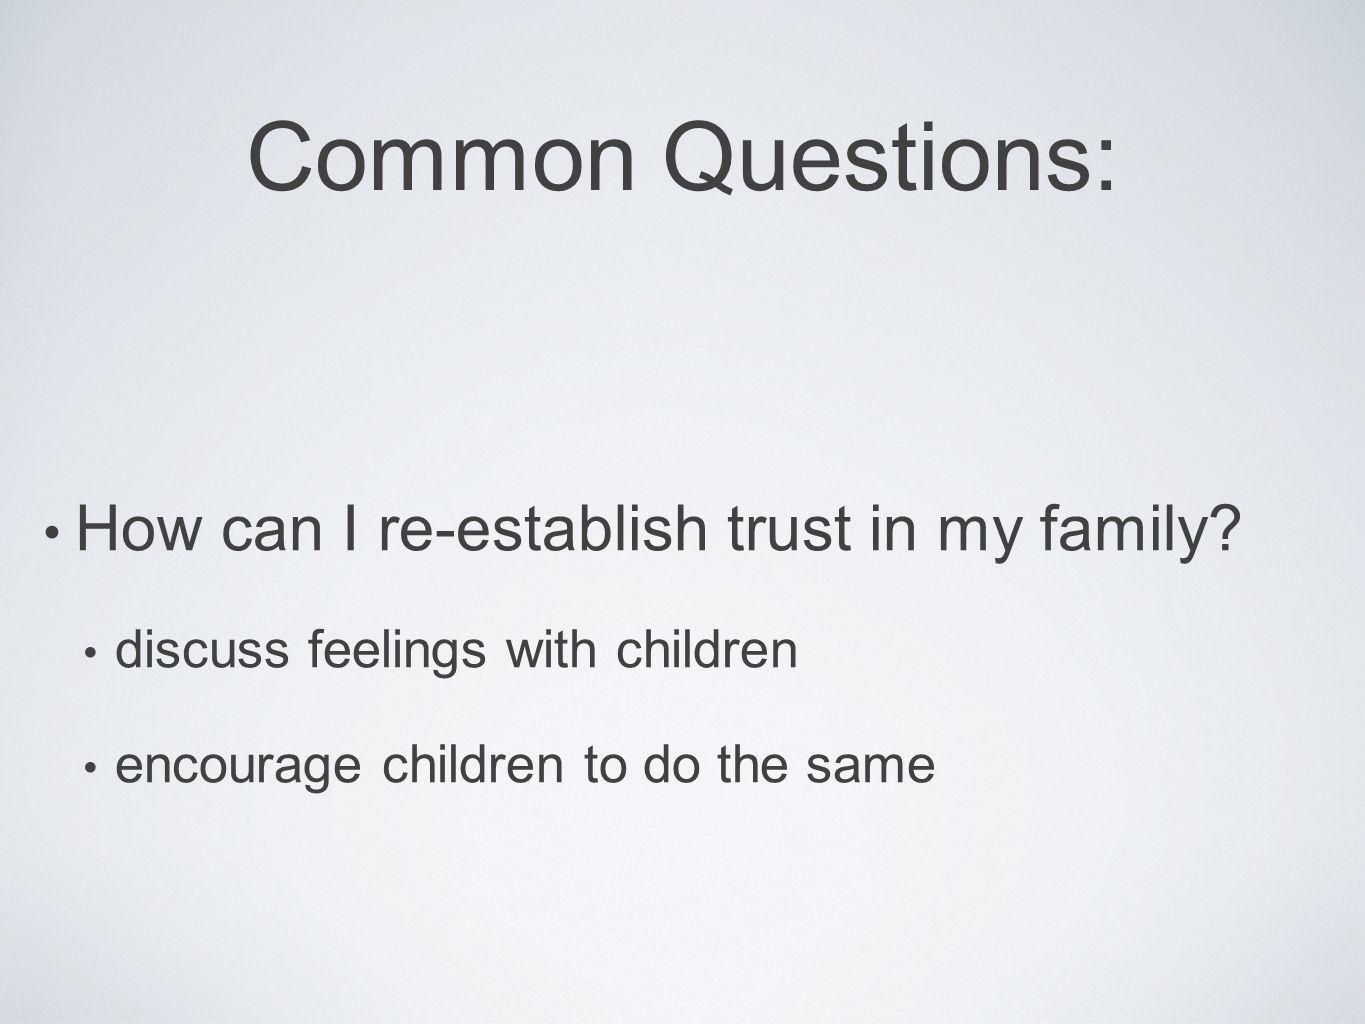 Common Questions: How can I re-establish trust in my family? discuss feelings with children encourage children to do the same